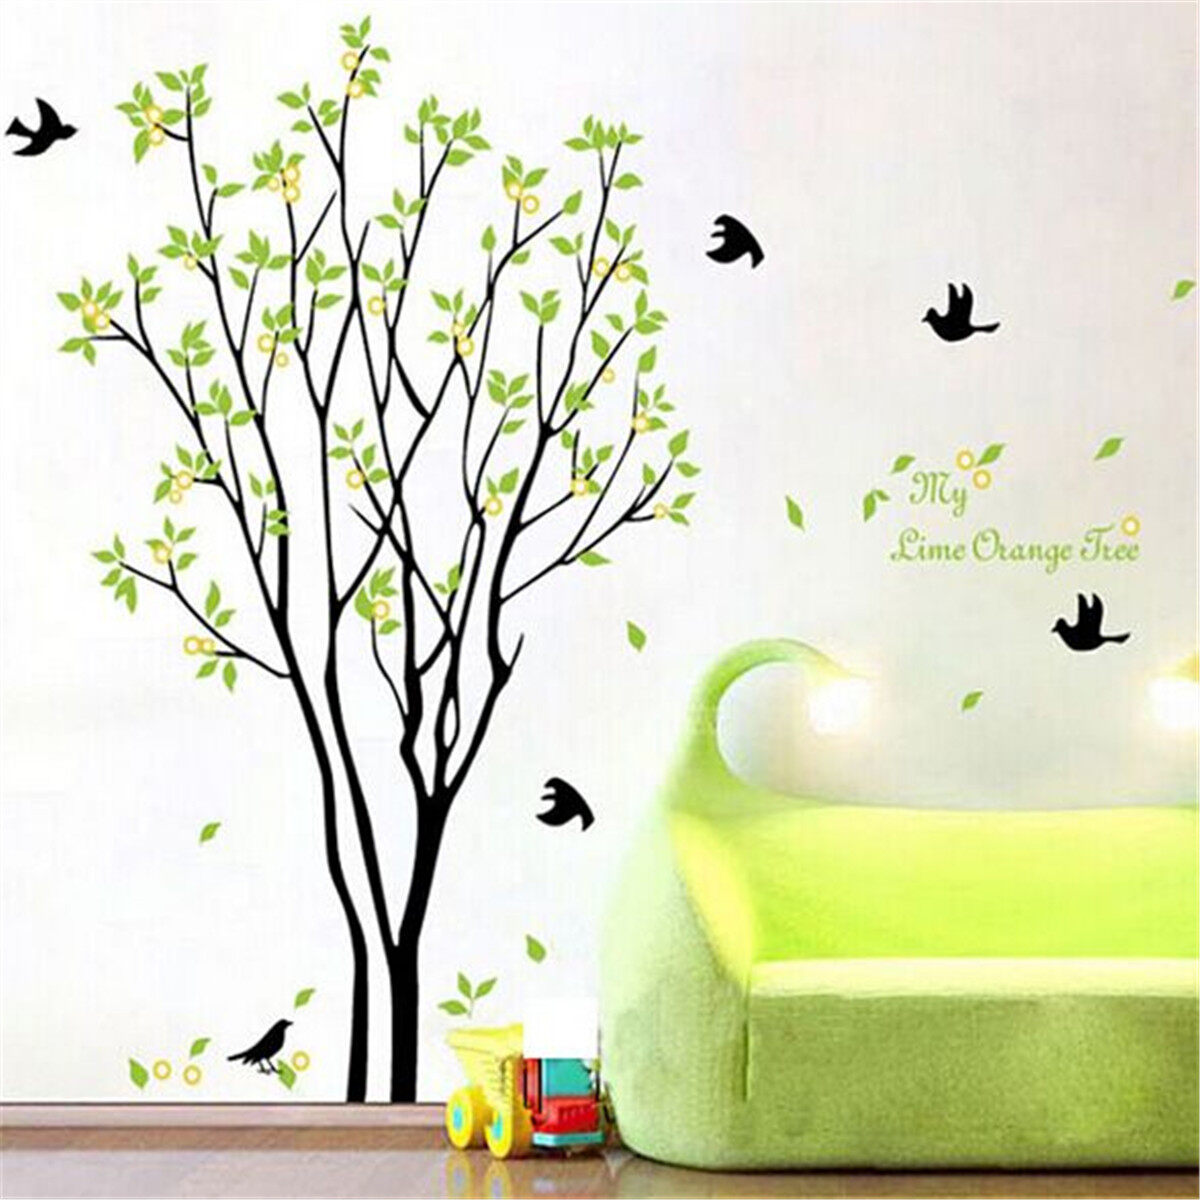 Tree Bird Quote Removable Vinyl Wall Decal Mural Home Art DIY - Diy wall decor birds